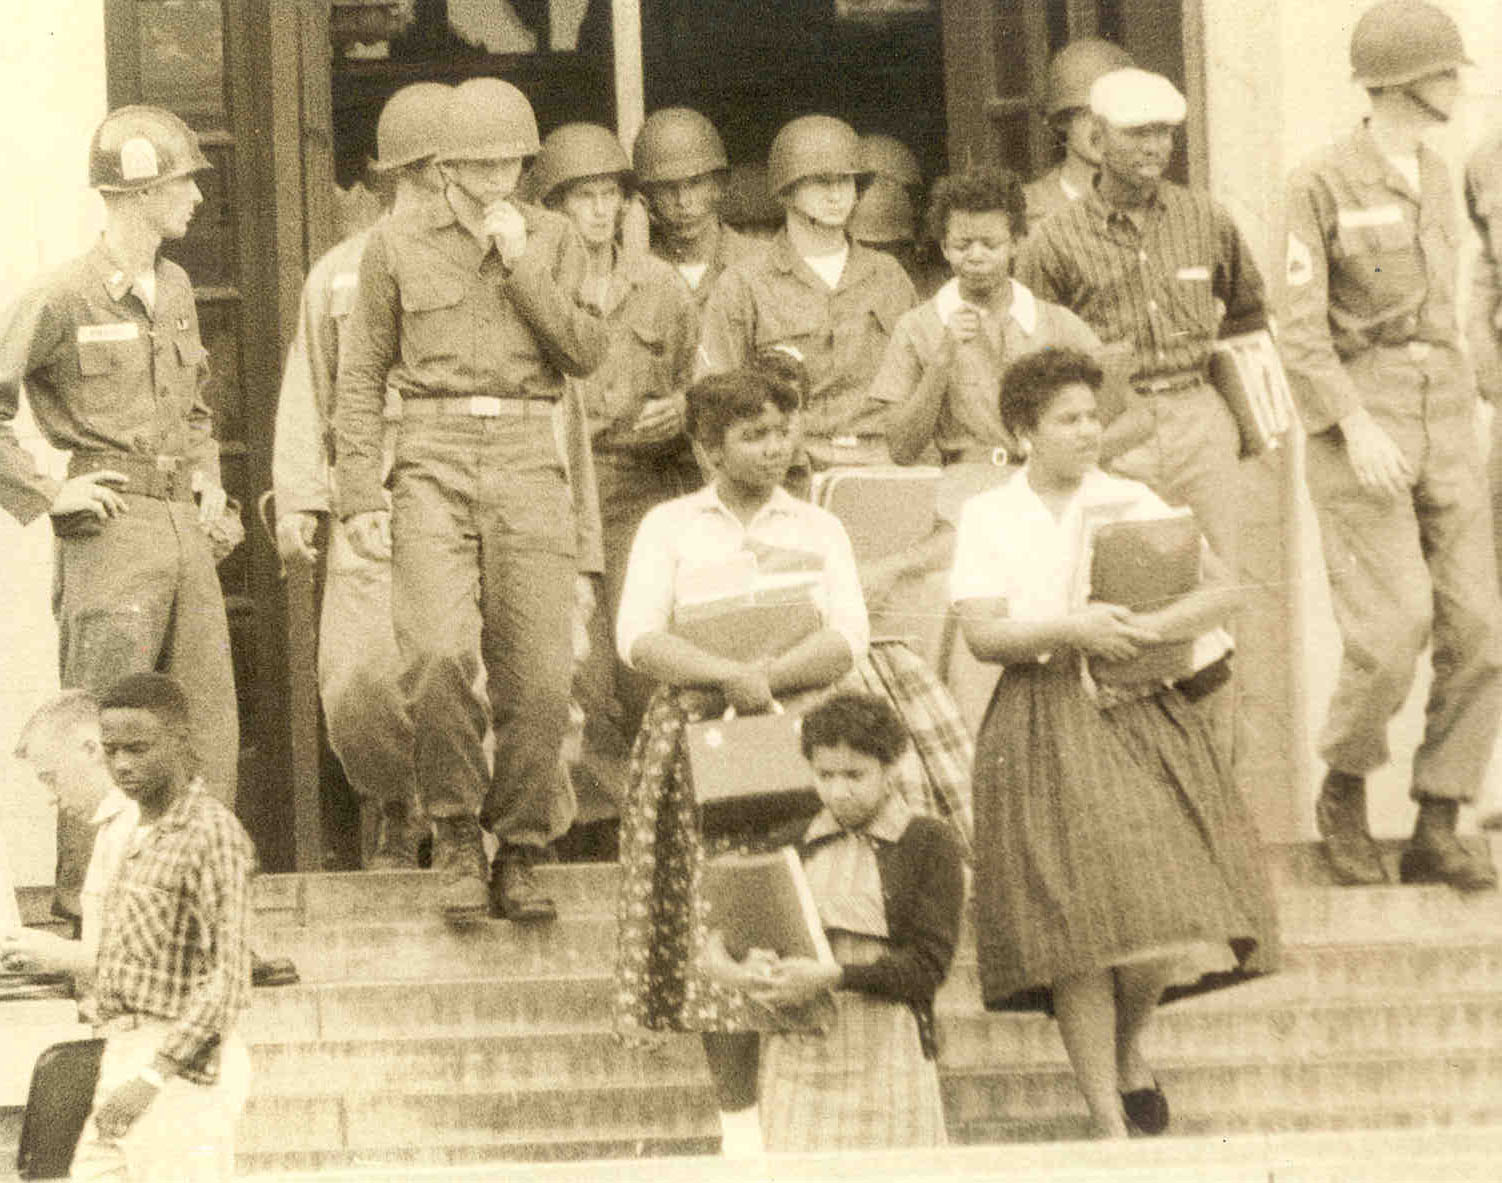 101st U.S. Airborne Division escorting the Little Rock Nine into Central High School